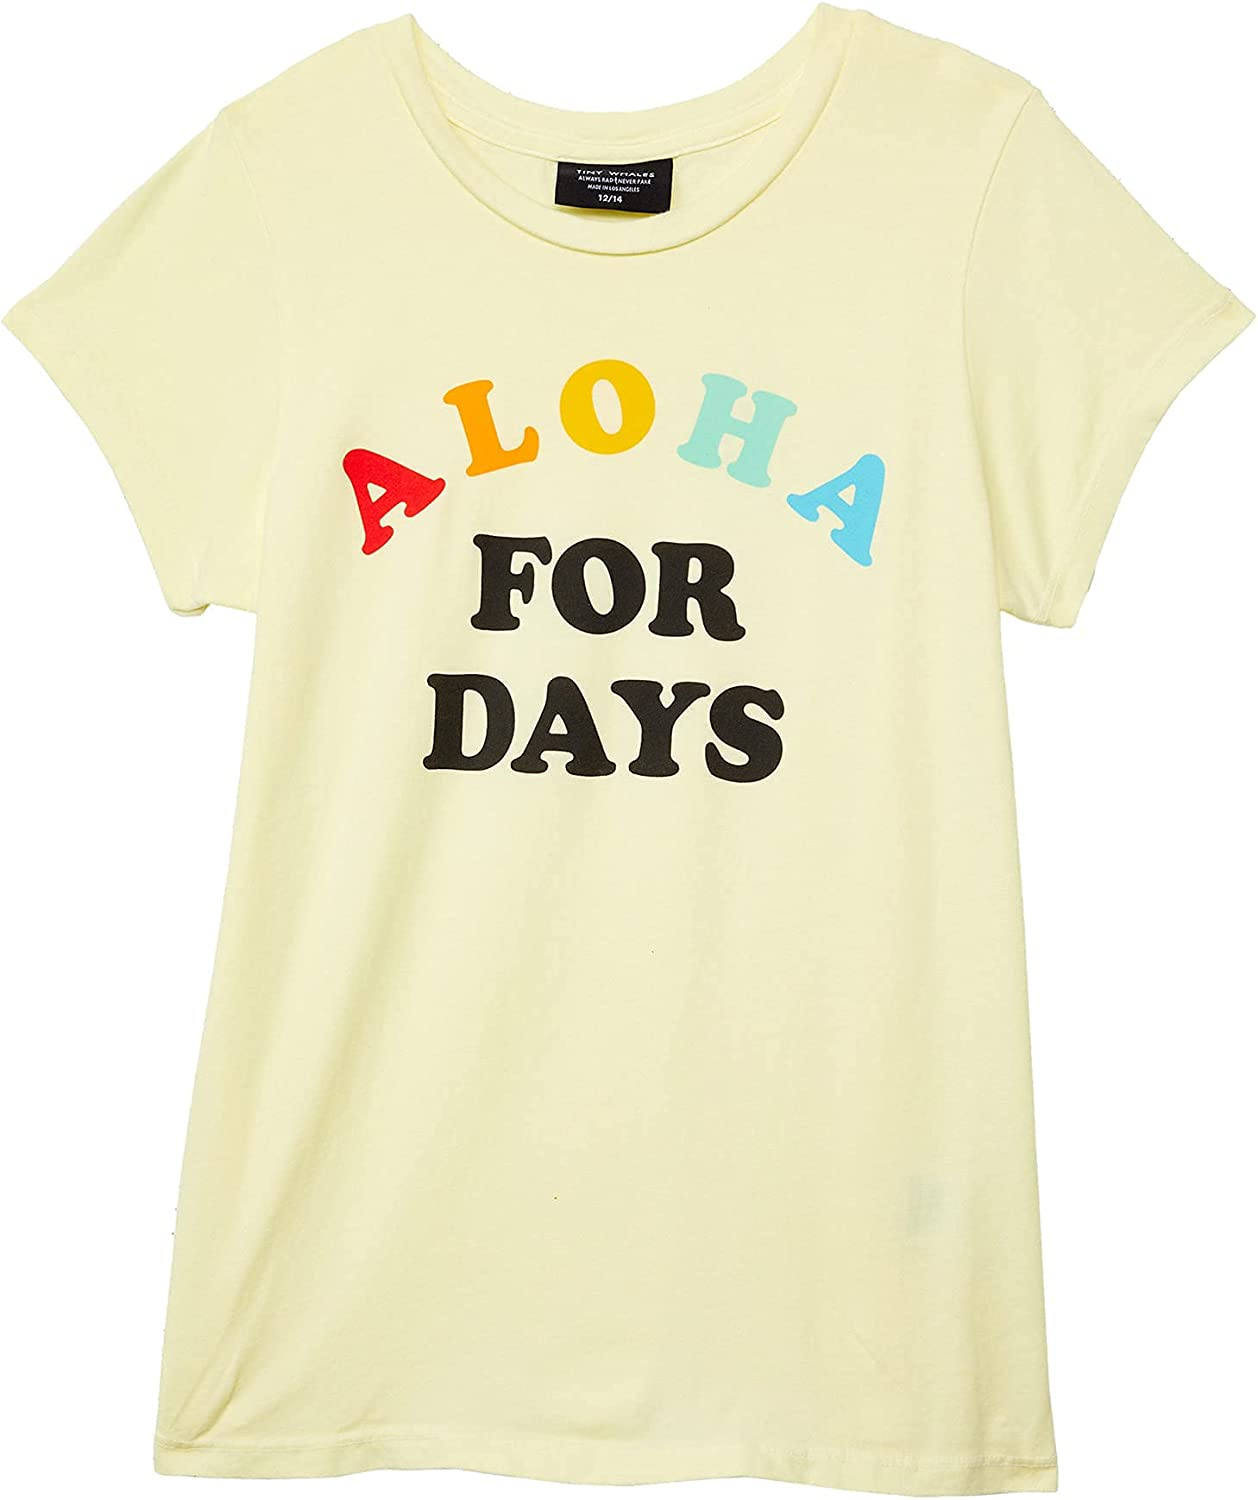 Tiny Whales Boy's Aloha for Days Graphic Short Sleeve T-Shirt (Toddler/Little Kids/Big Kids)